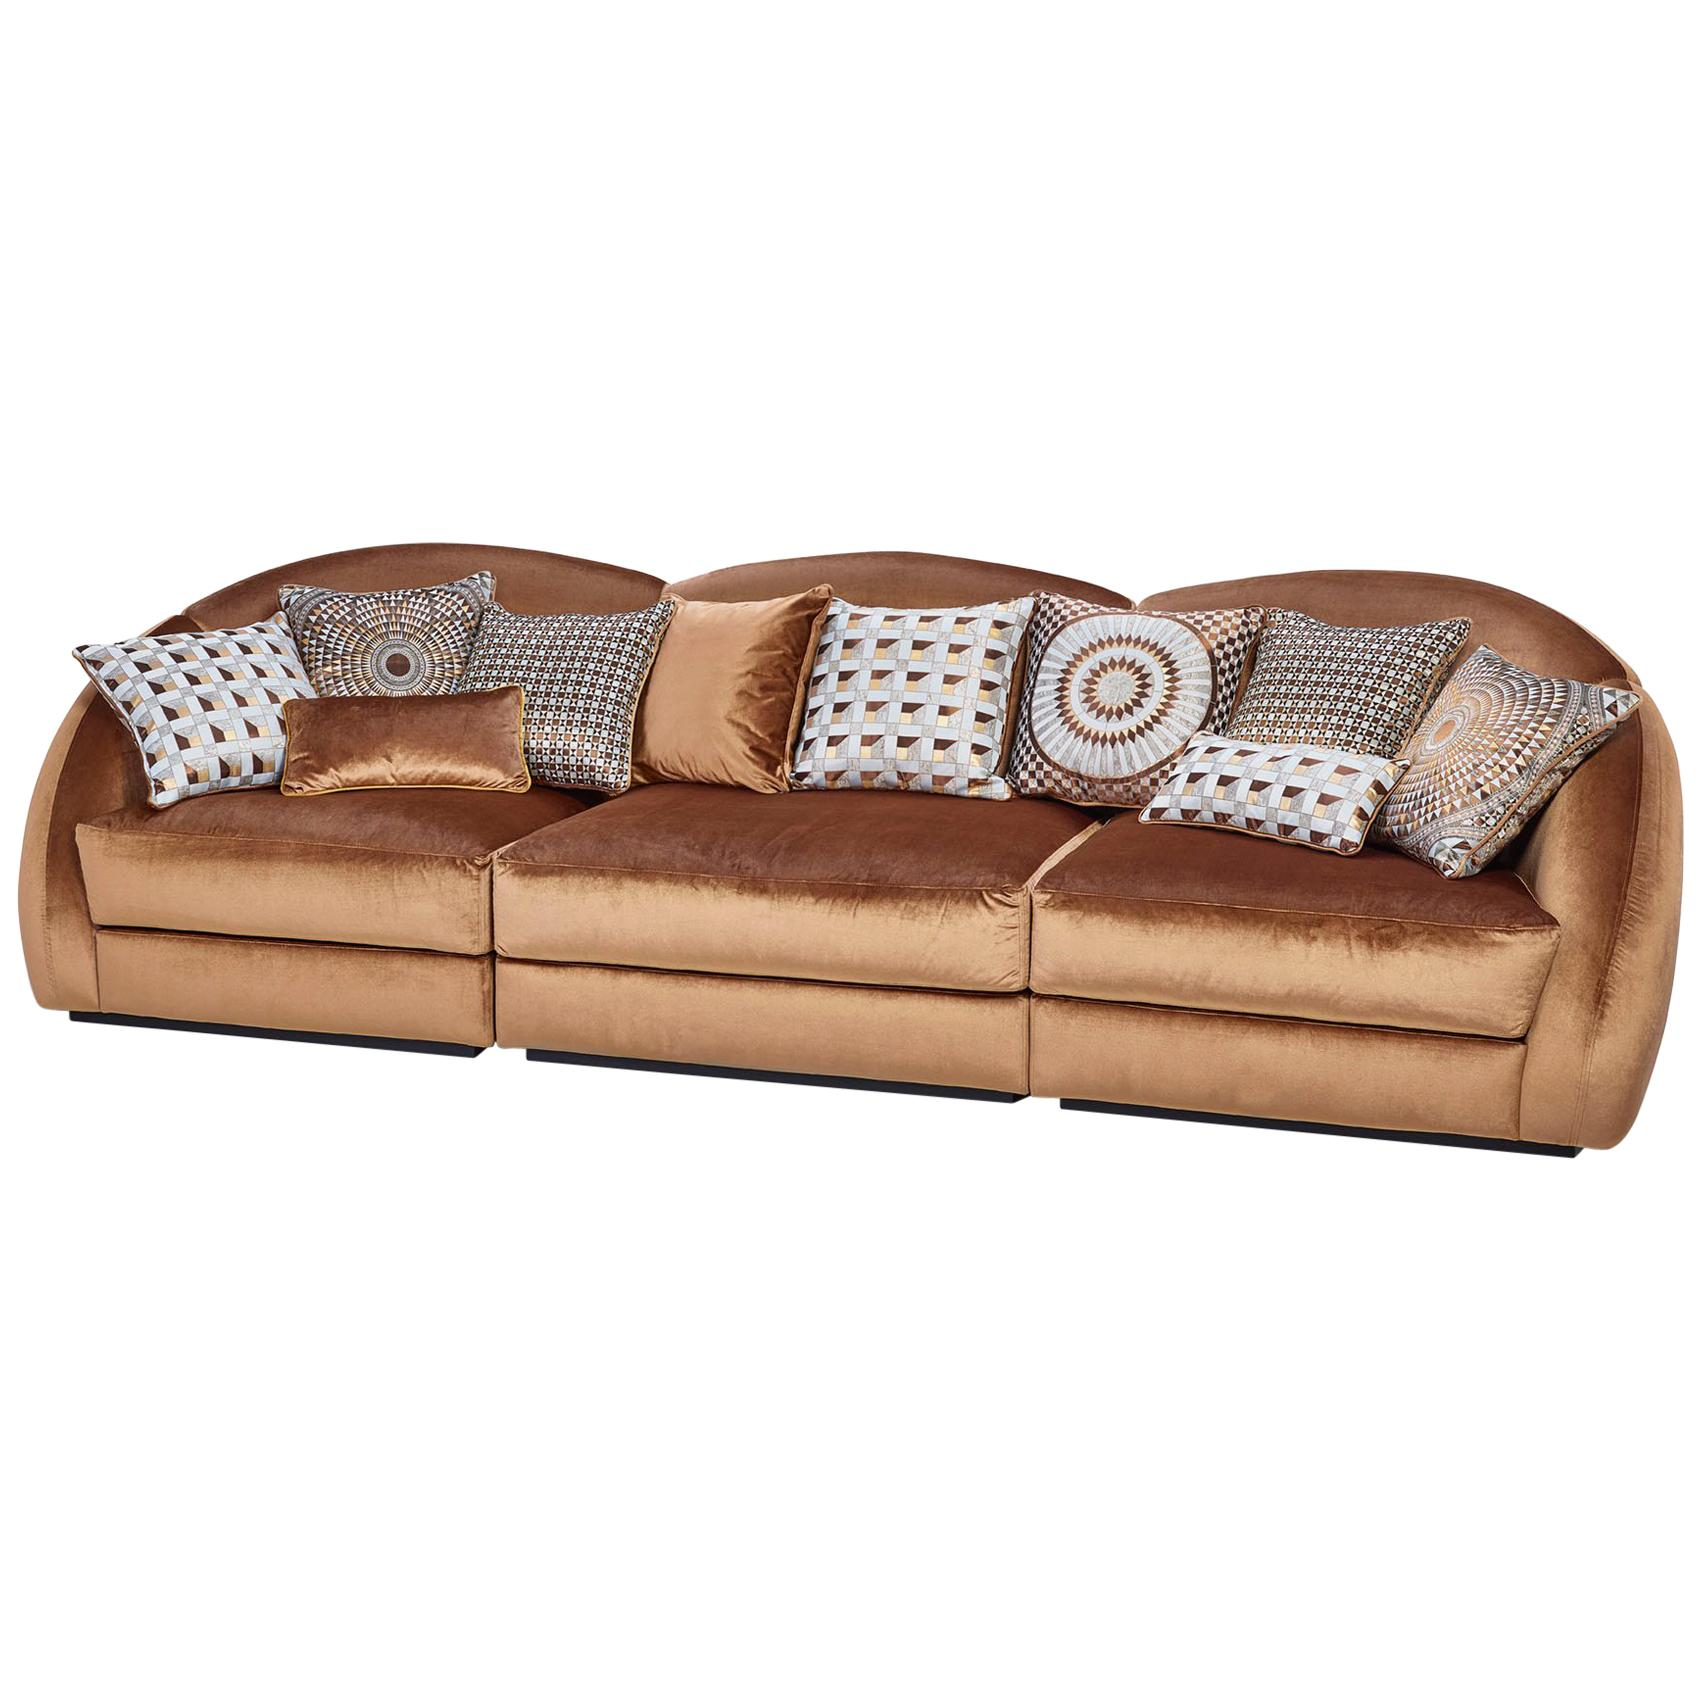 Beautiful Sofa Frame Made of Solid Timber and  Wood Down Feather Loose Pillows